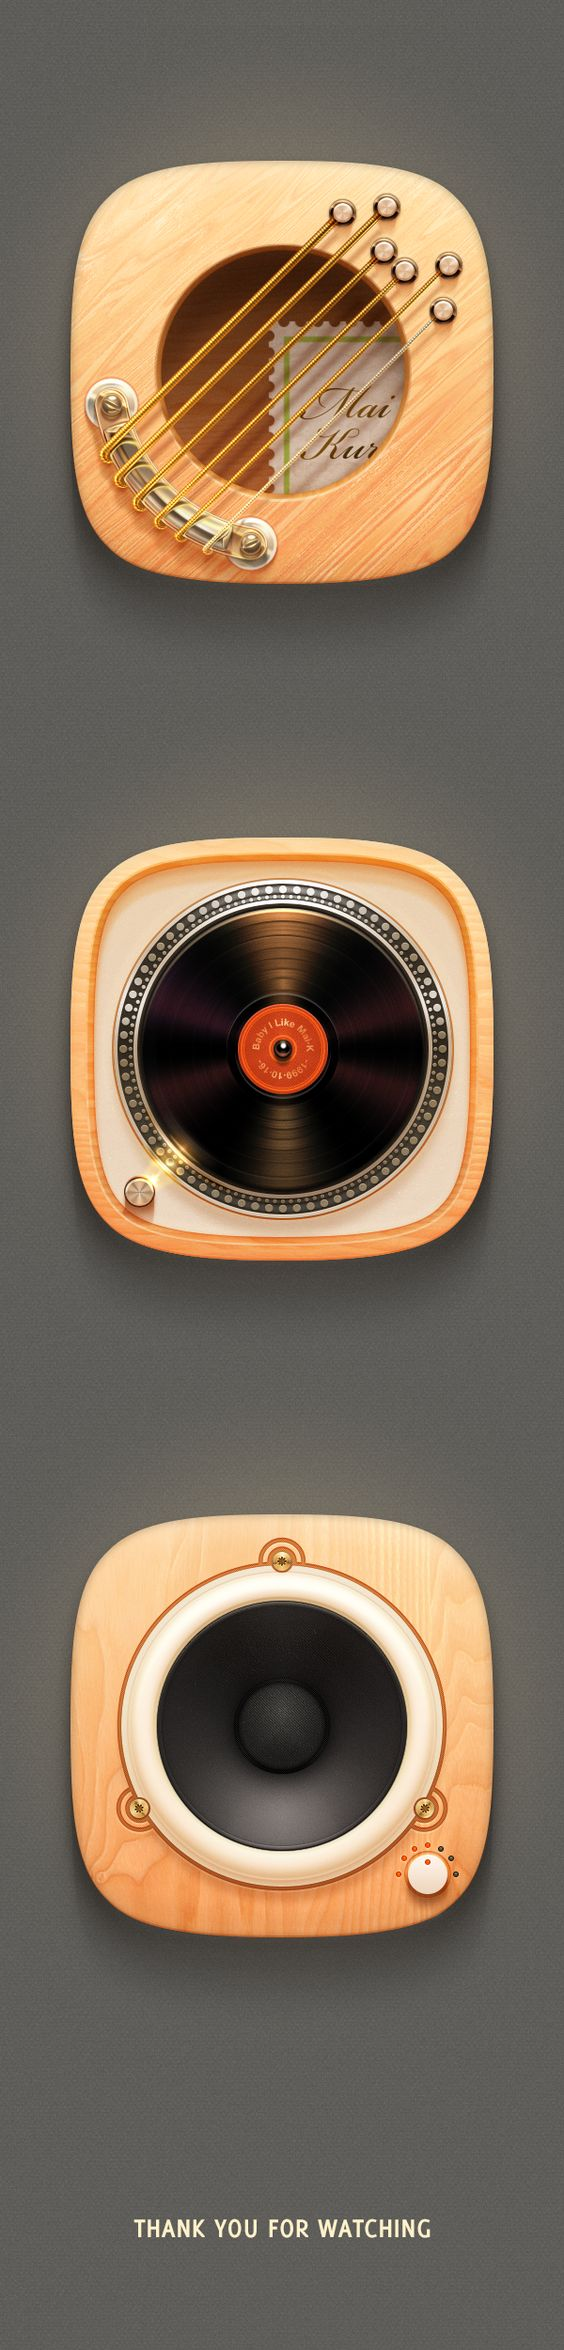 Music icons by ruo tang, via Behance